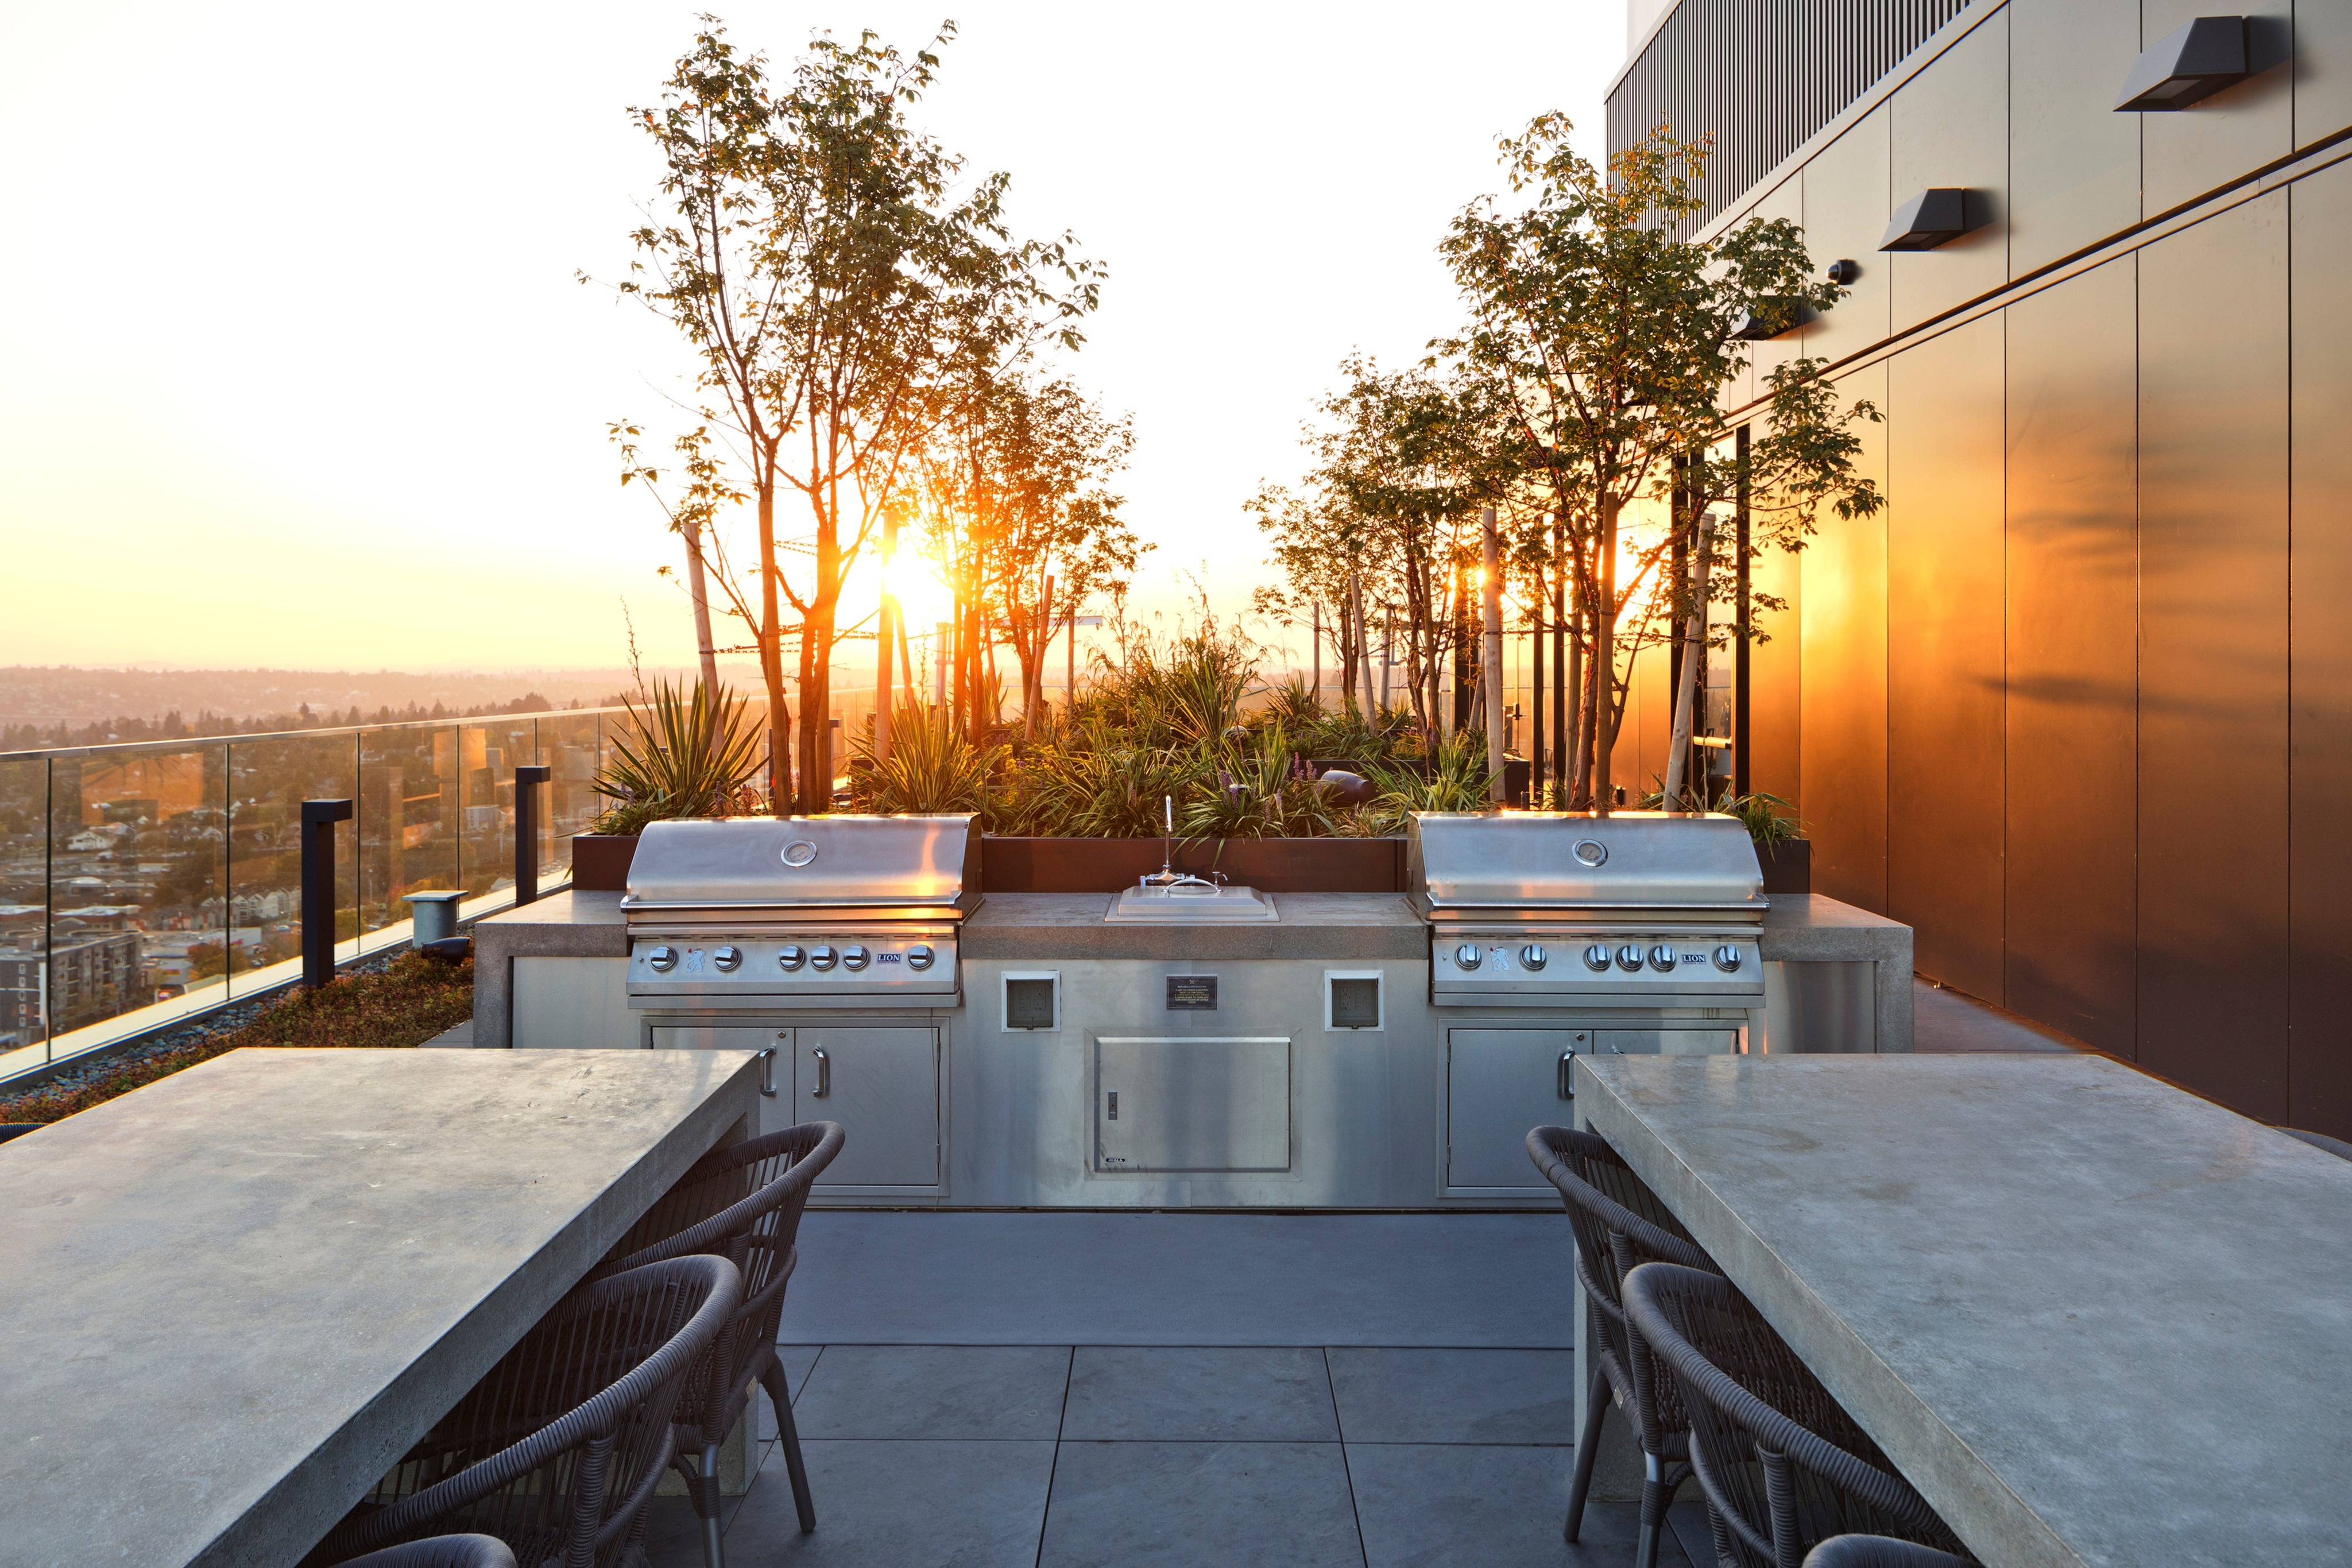 Sun Deck with Grills